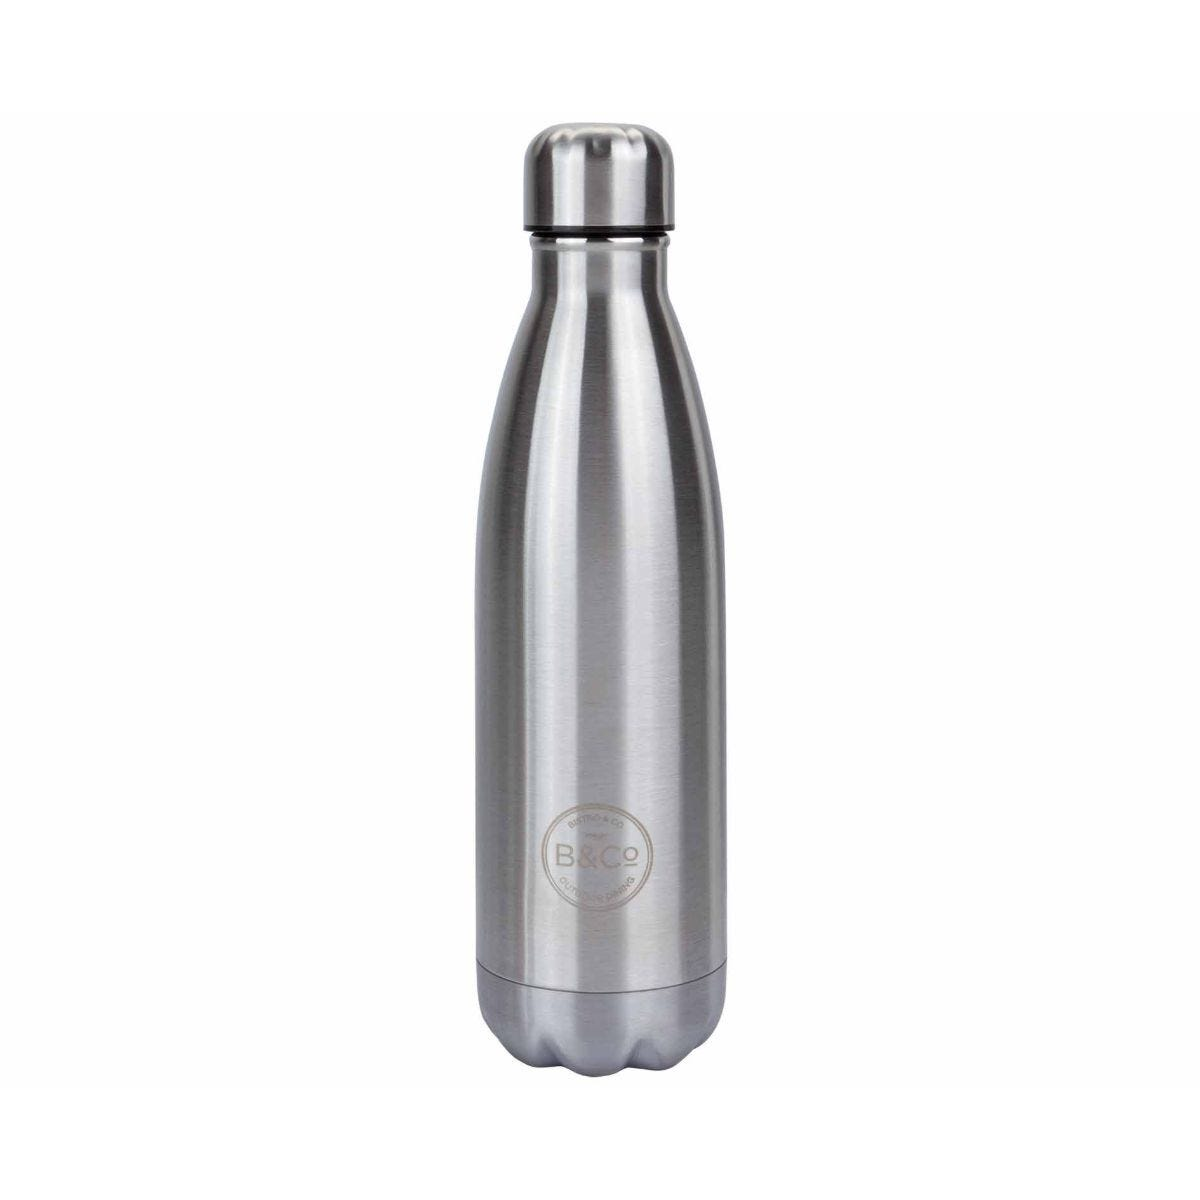 B and Co Stainless Steel Thermal Bottle Flask 500ml Silver